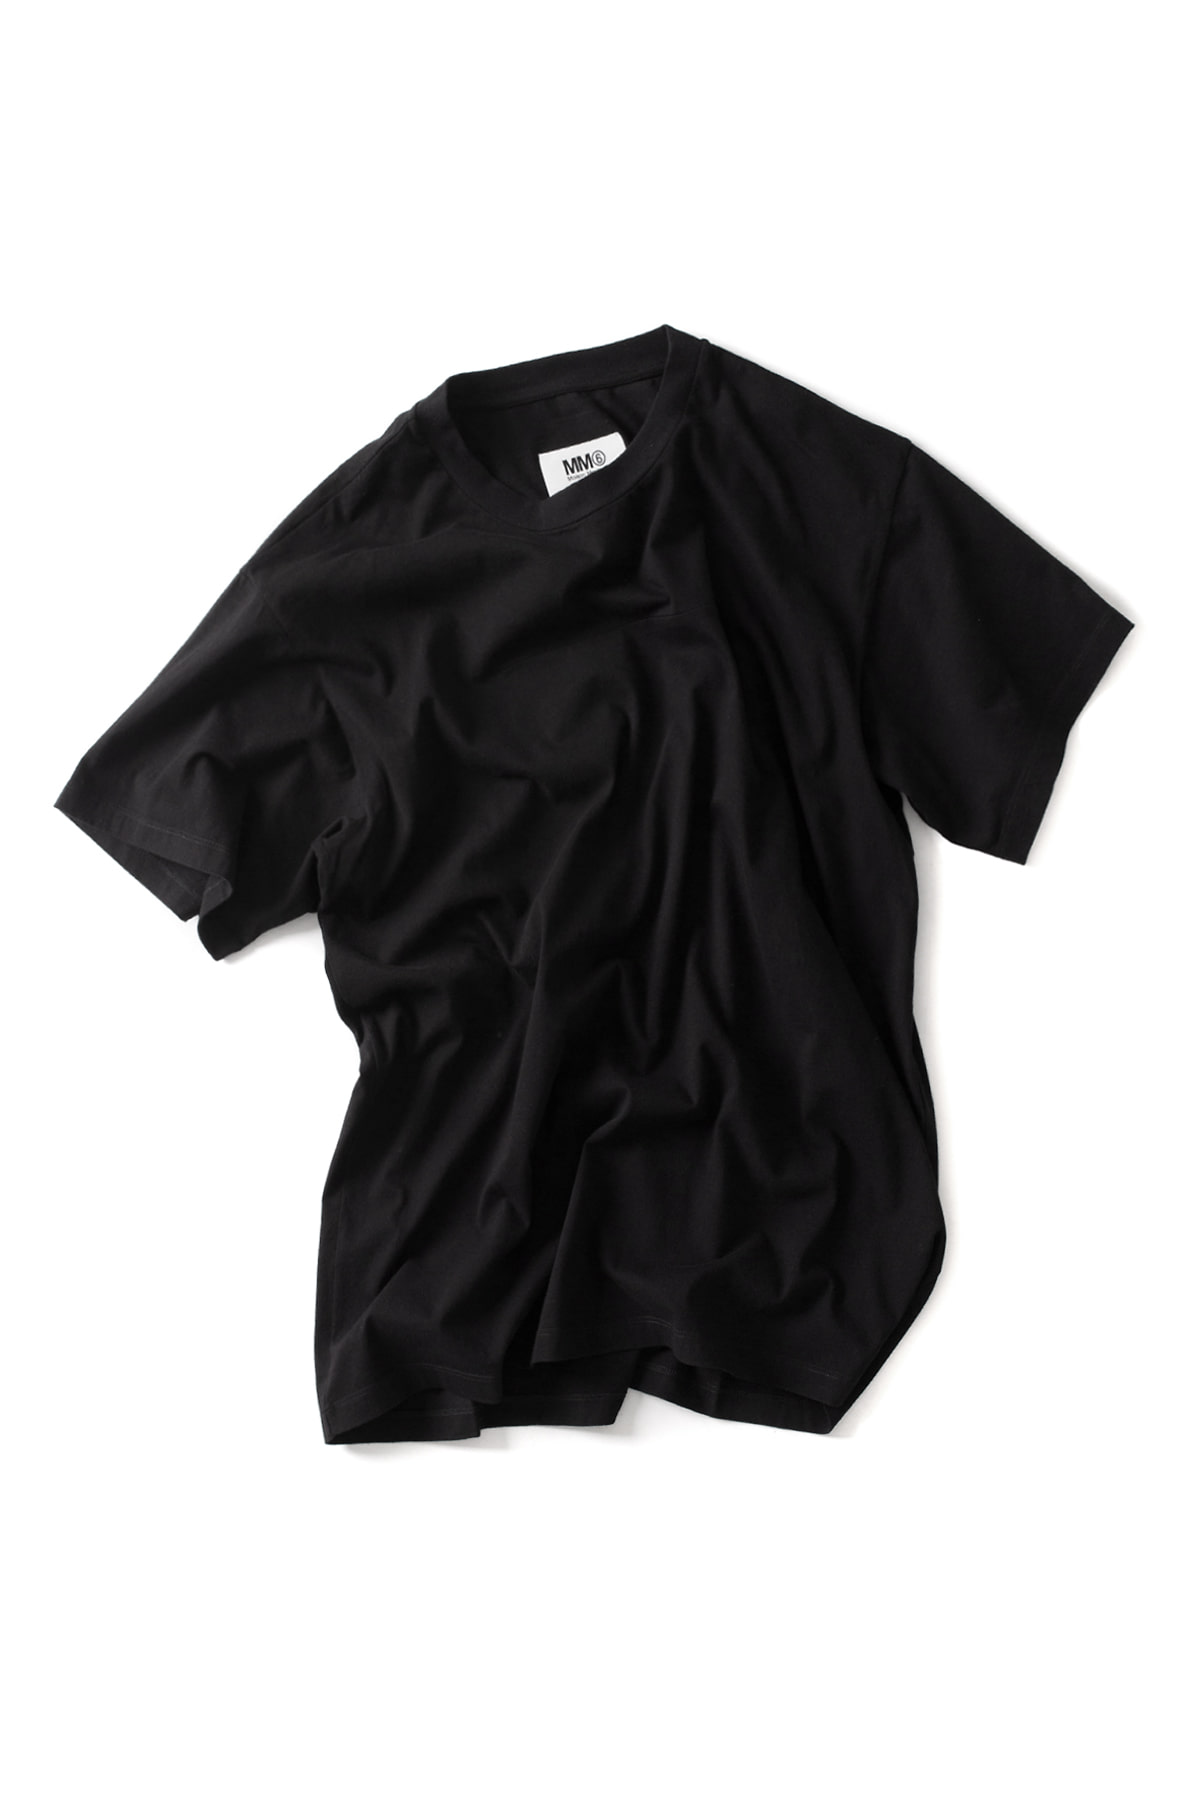 MM6 Maison Margiela : Oversized T-Shirt (Black)